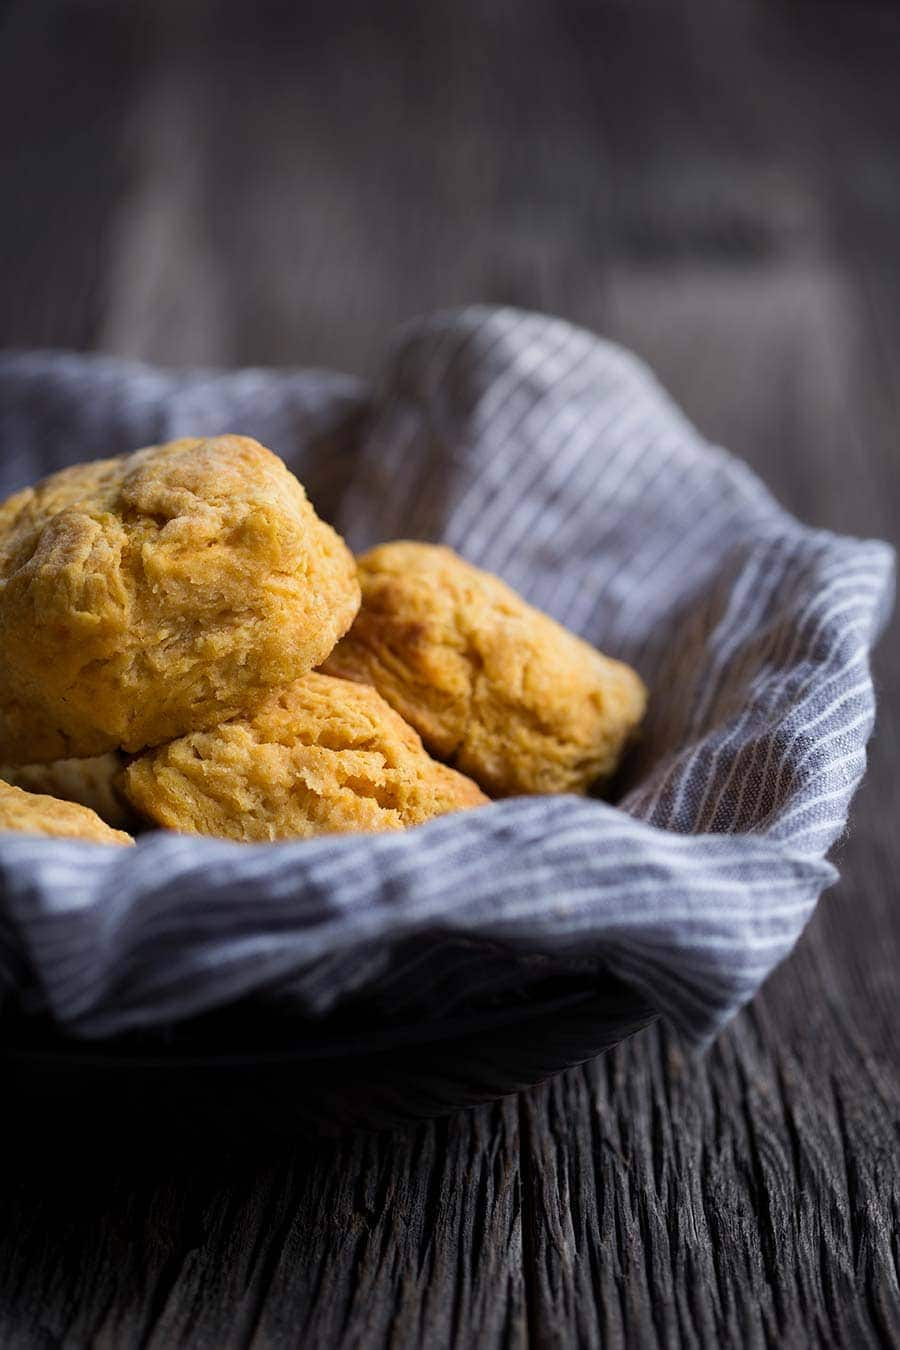 A photo of sweet potato buttermilk biscuits in a basket.